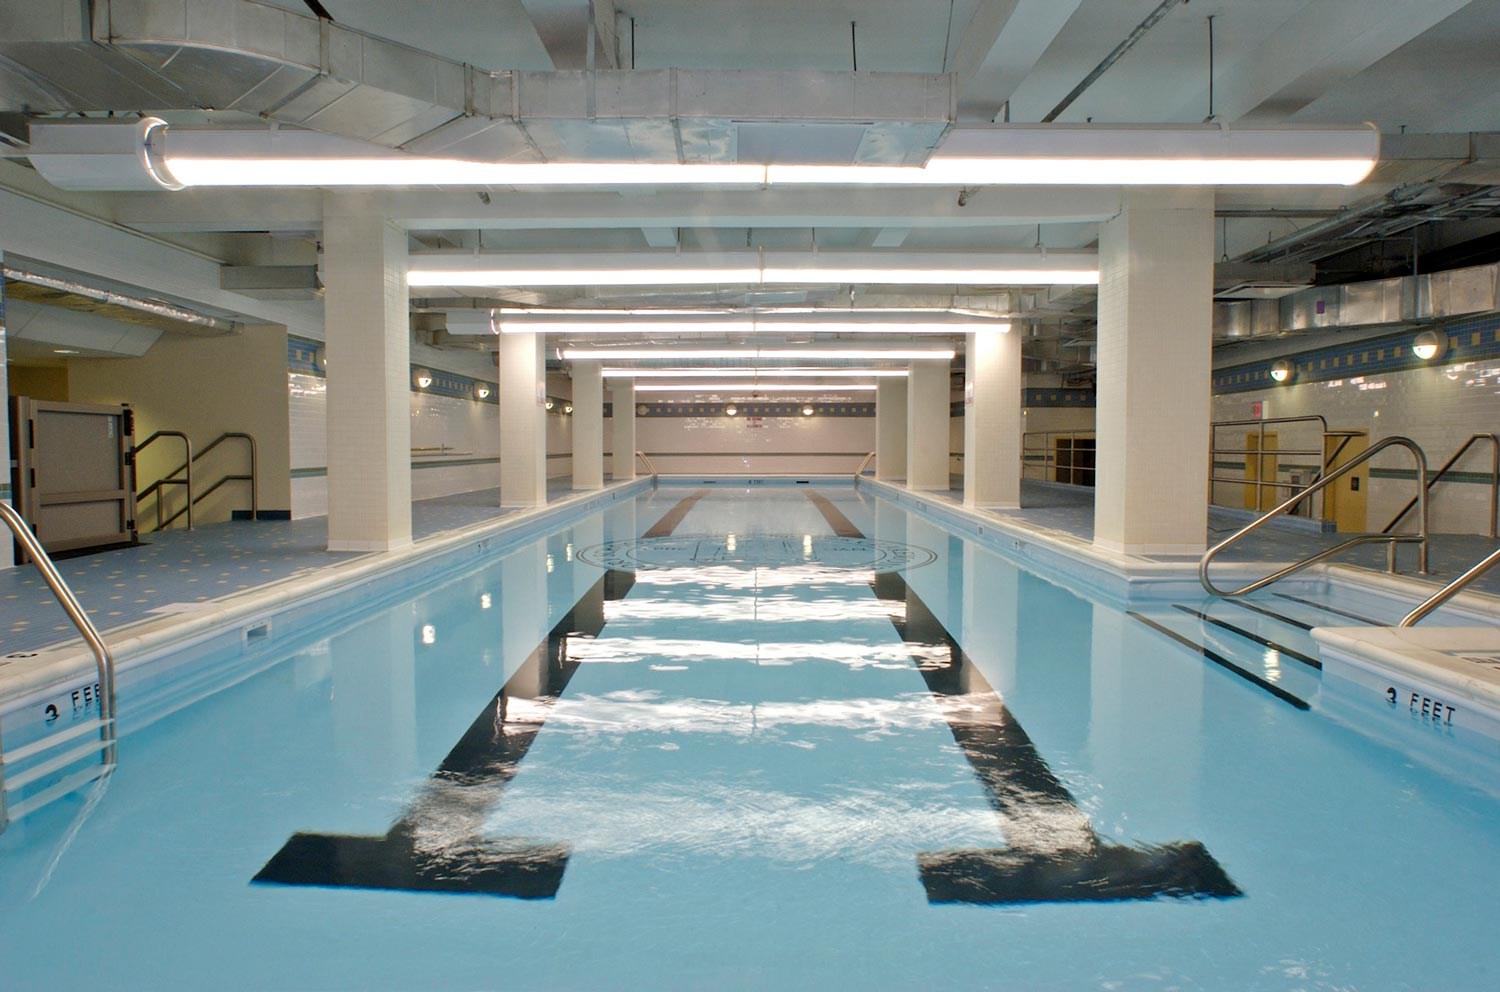 An olympic sized swimming pool was added at the roof level.